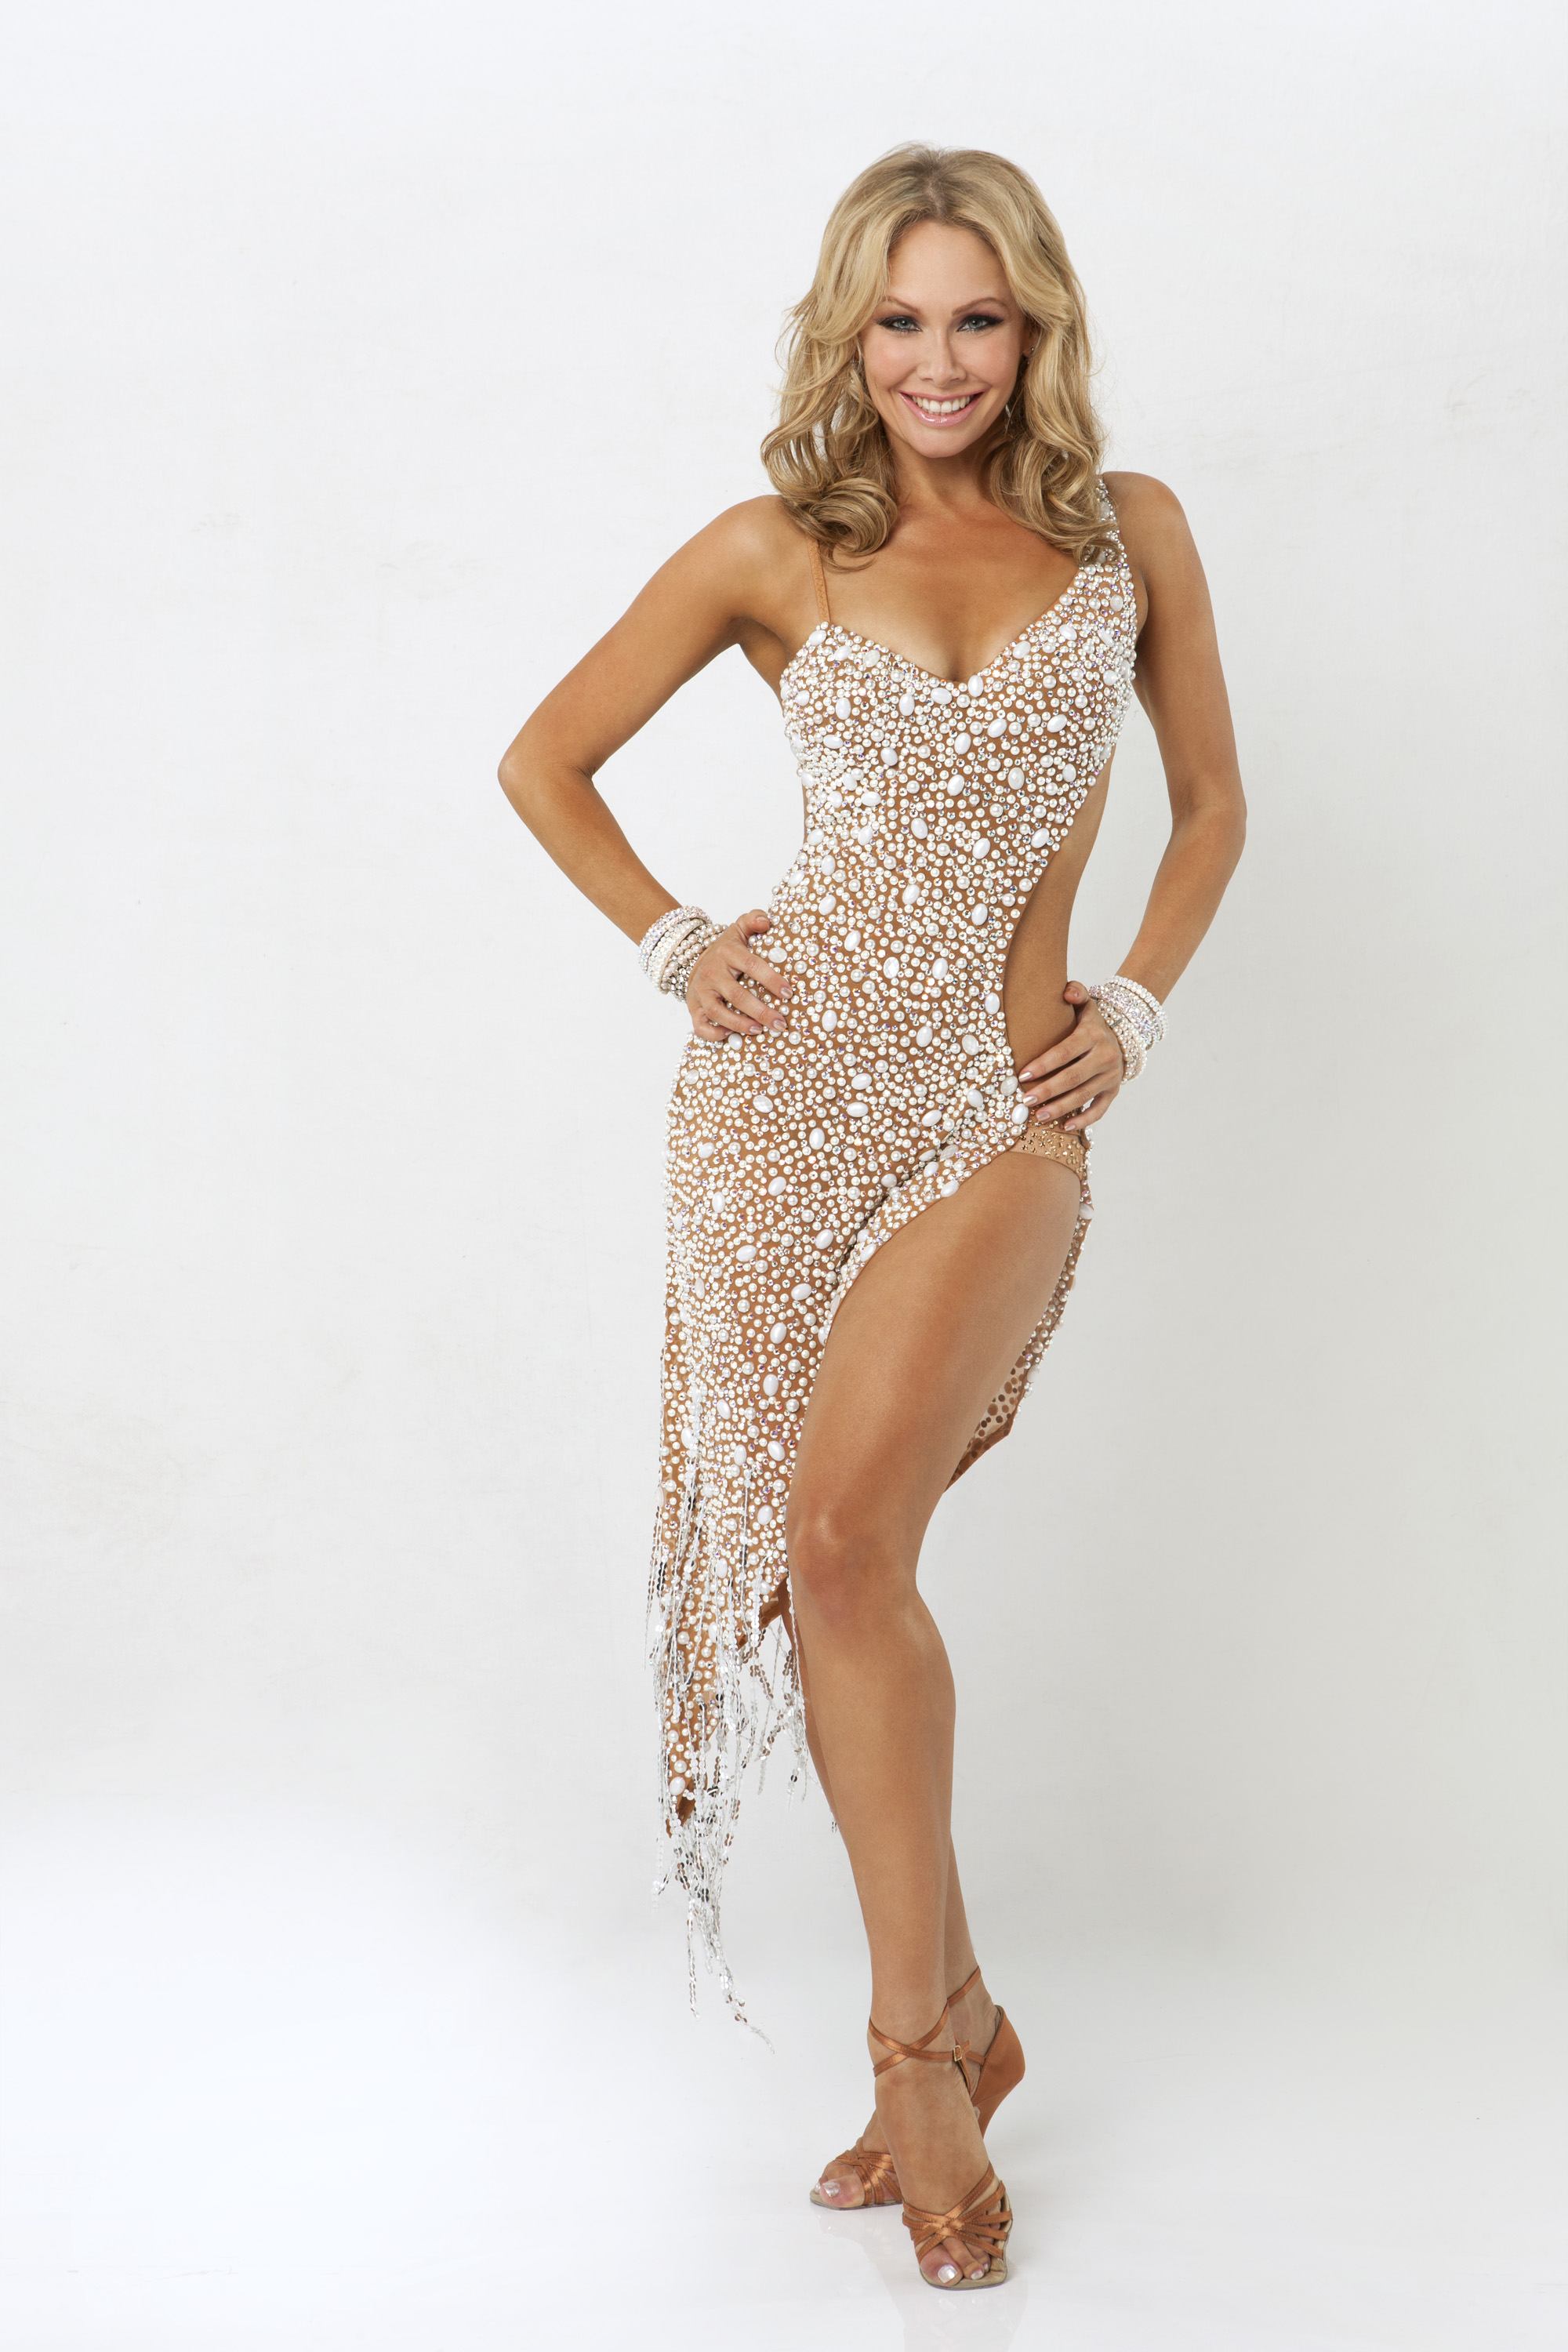 Kym Johnson Dancing With The Stars Married: Kym Johnson's Feet